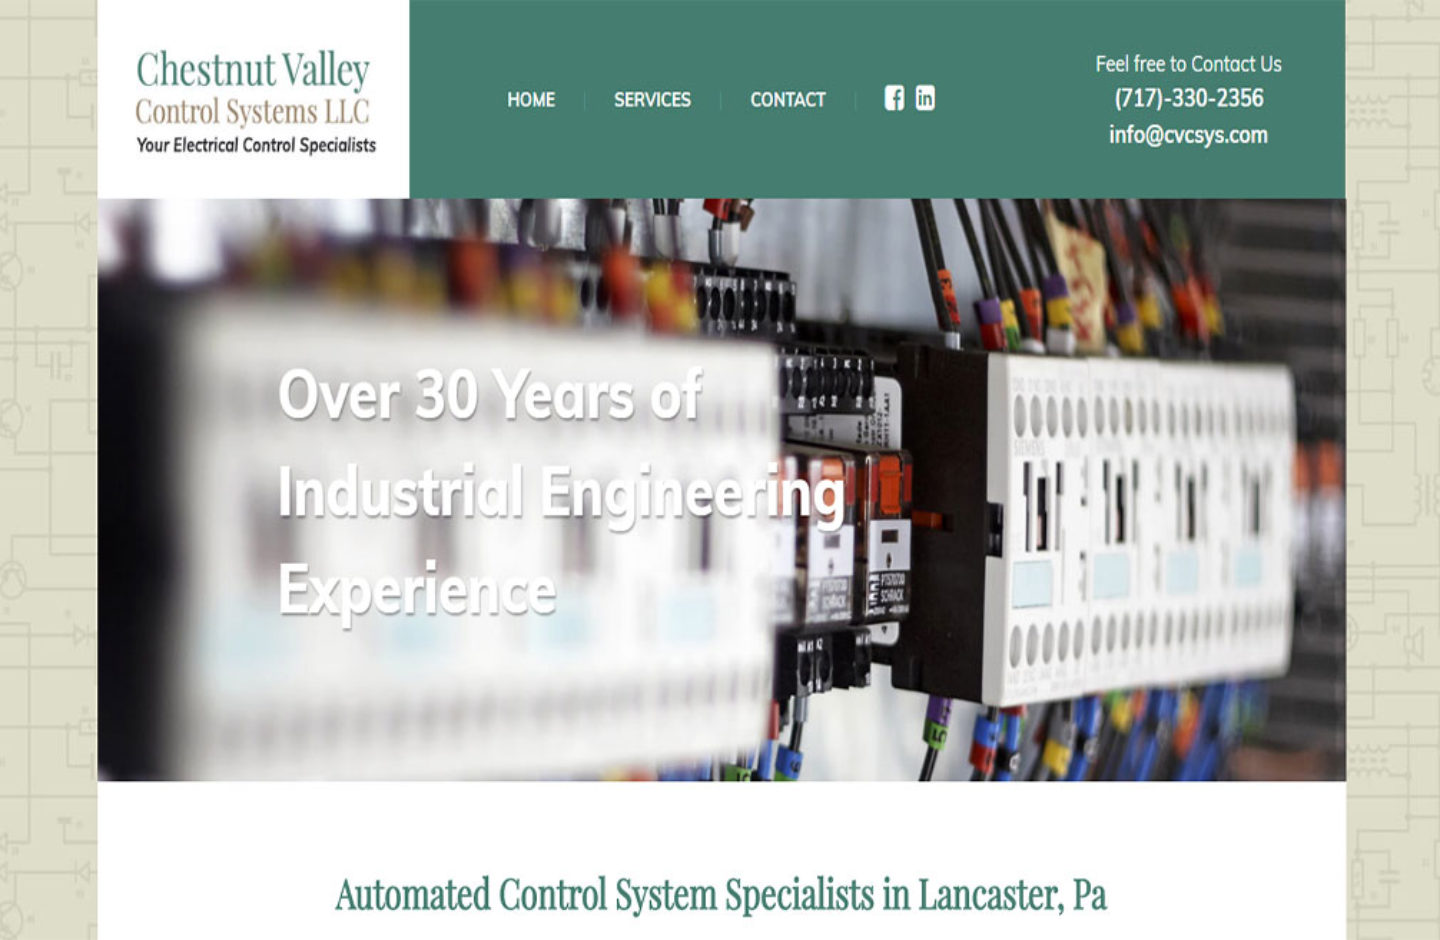 Chestnut Valley Control Systems